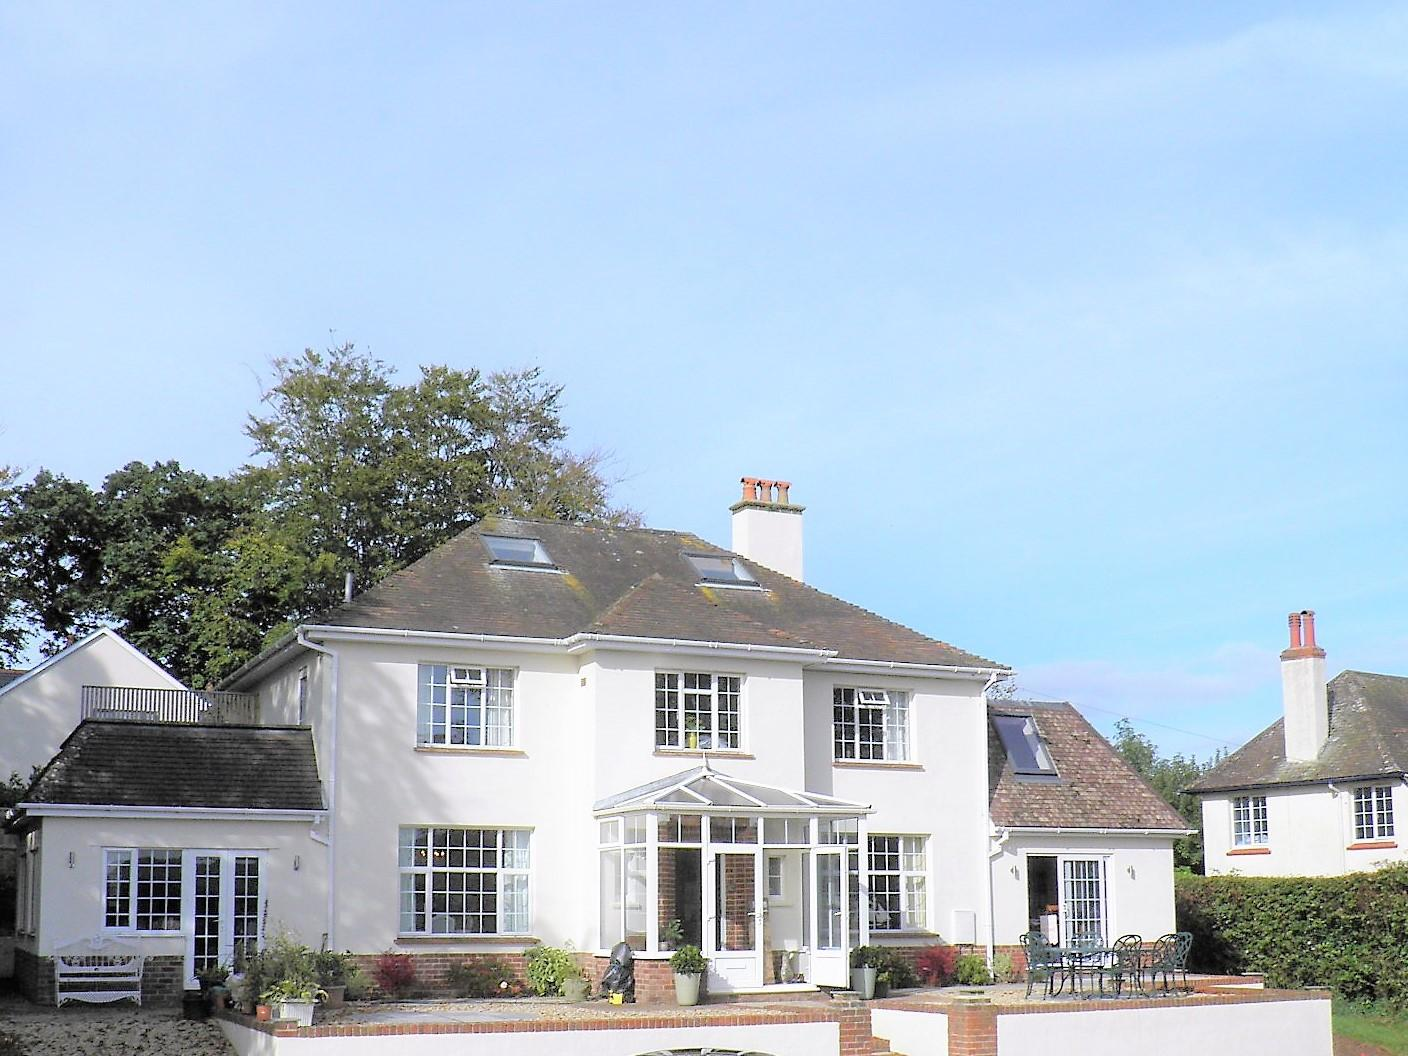 Cranleigh Bed & Breakfast - 3 Nights B&B £240.00